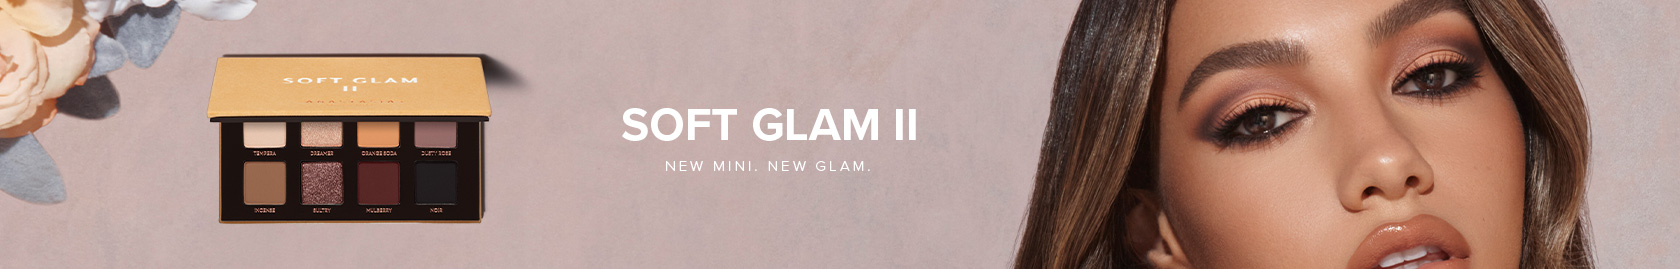 Soft Glam II - New Mini. New Glam